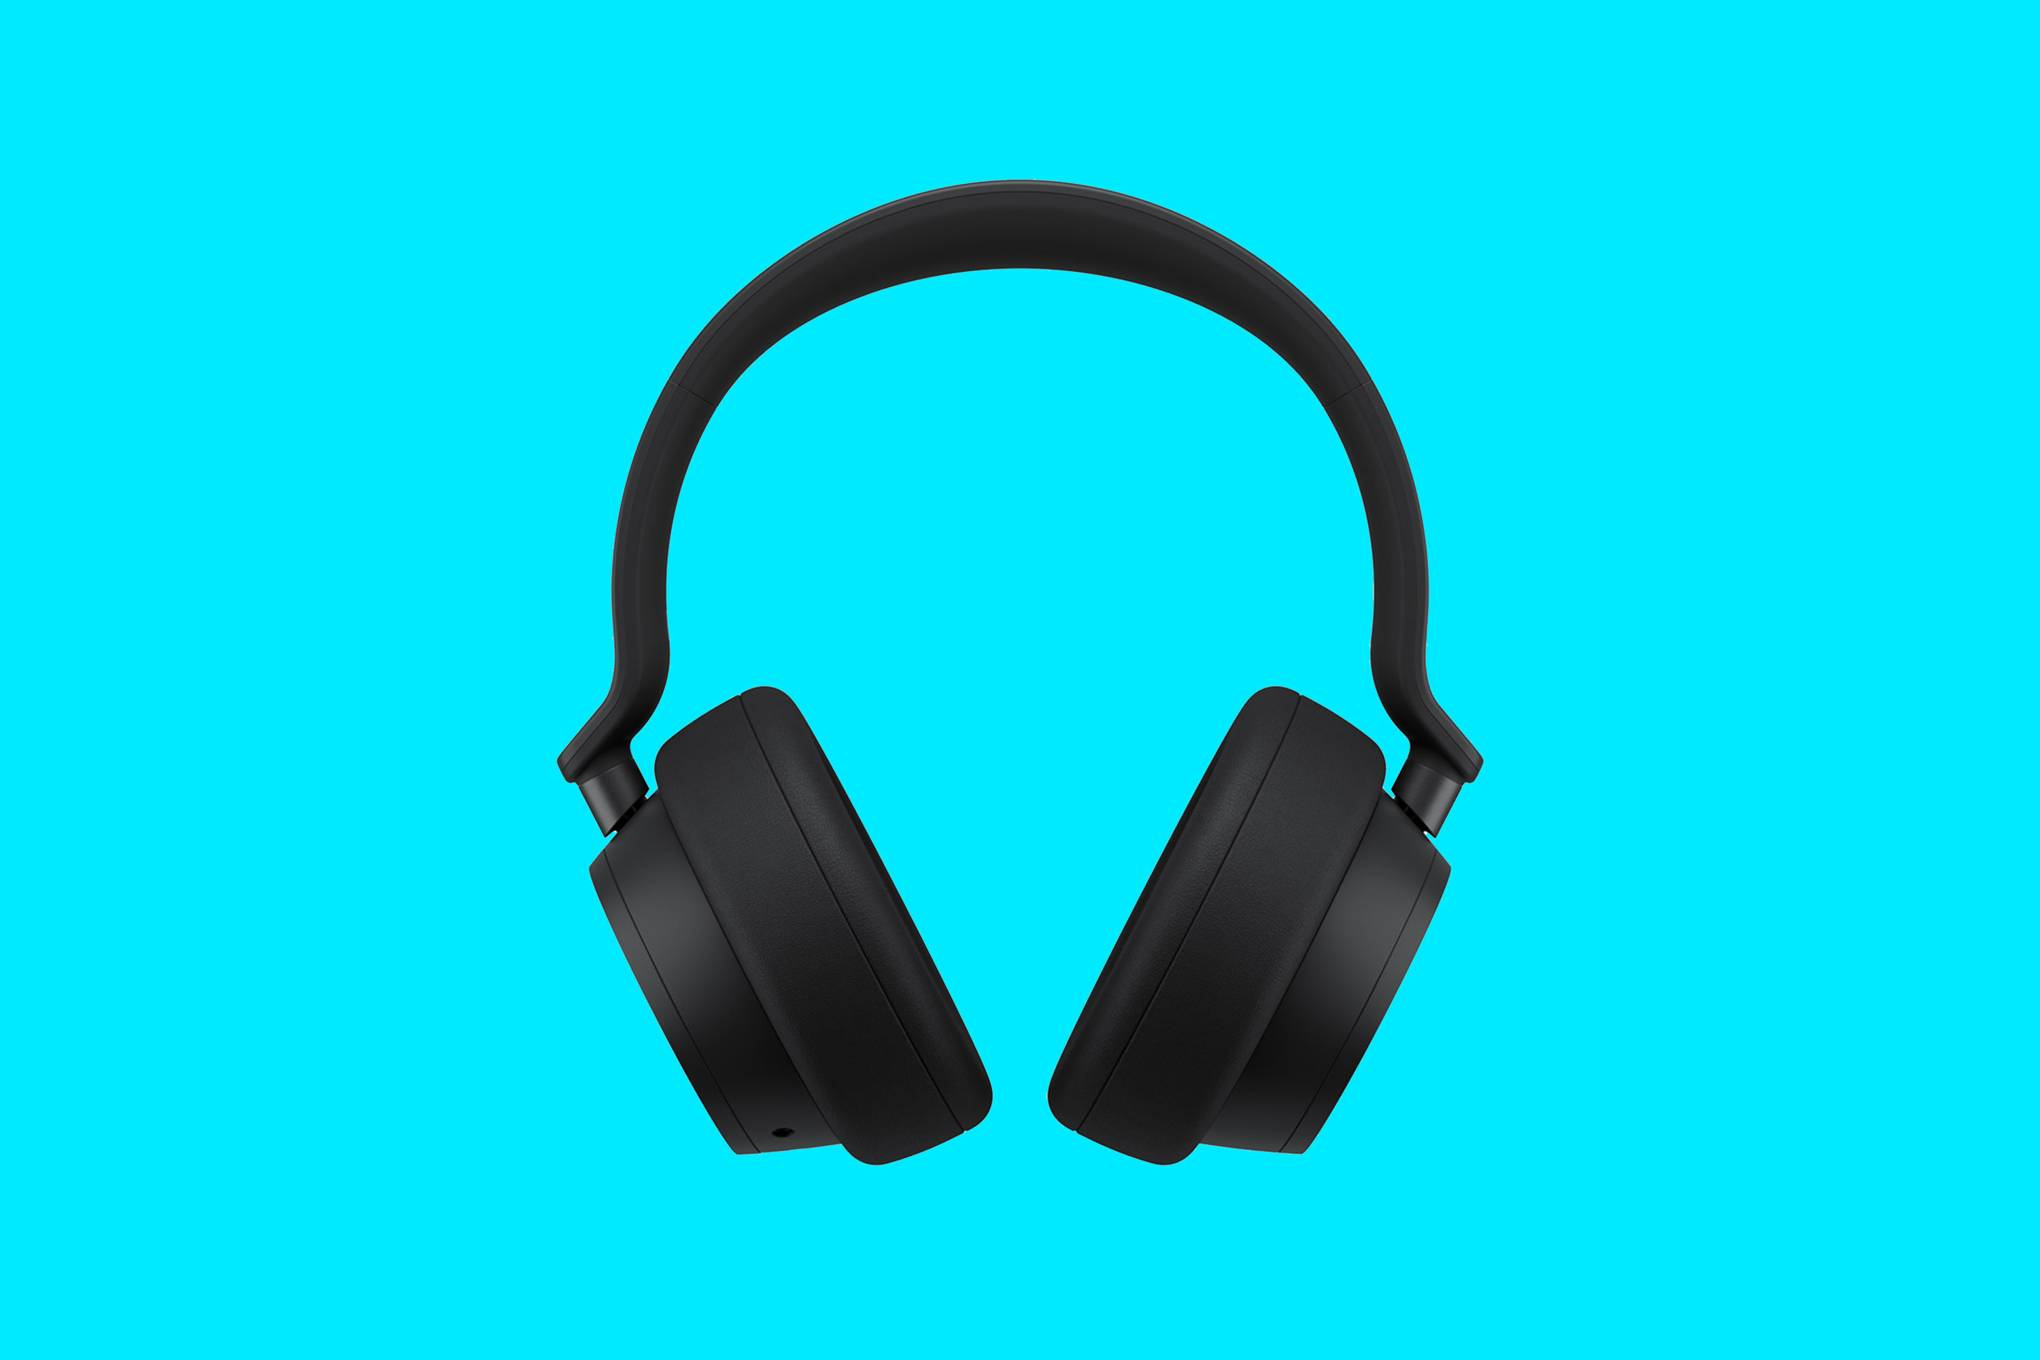 These Are The Best Noise Cancelling Headphones In 2020 Wired Uk